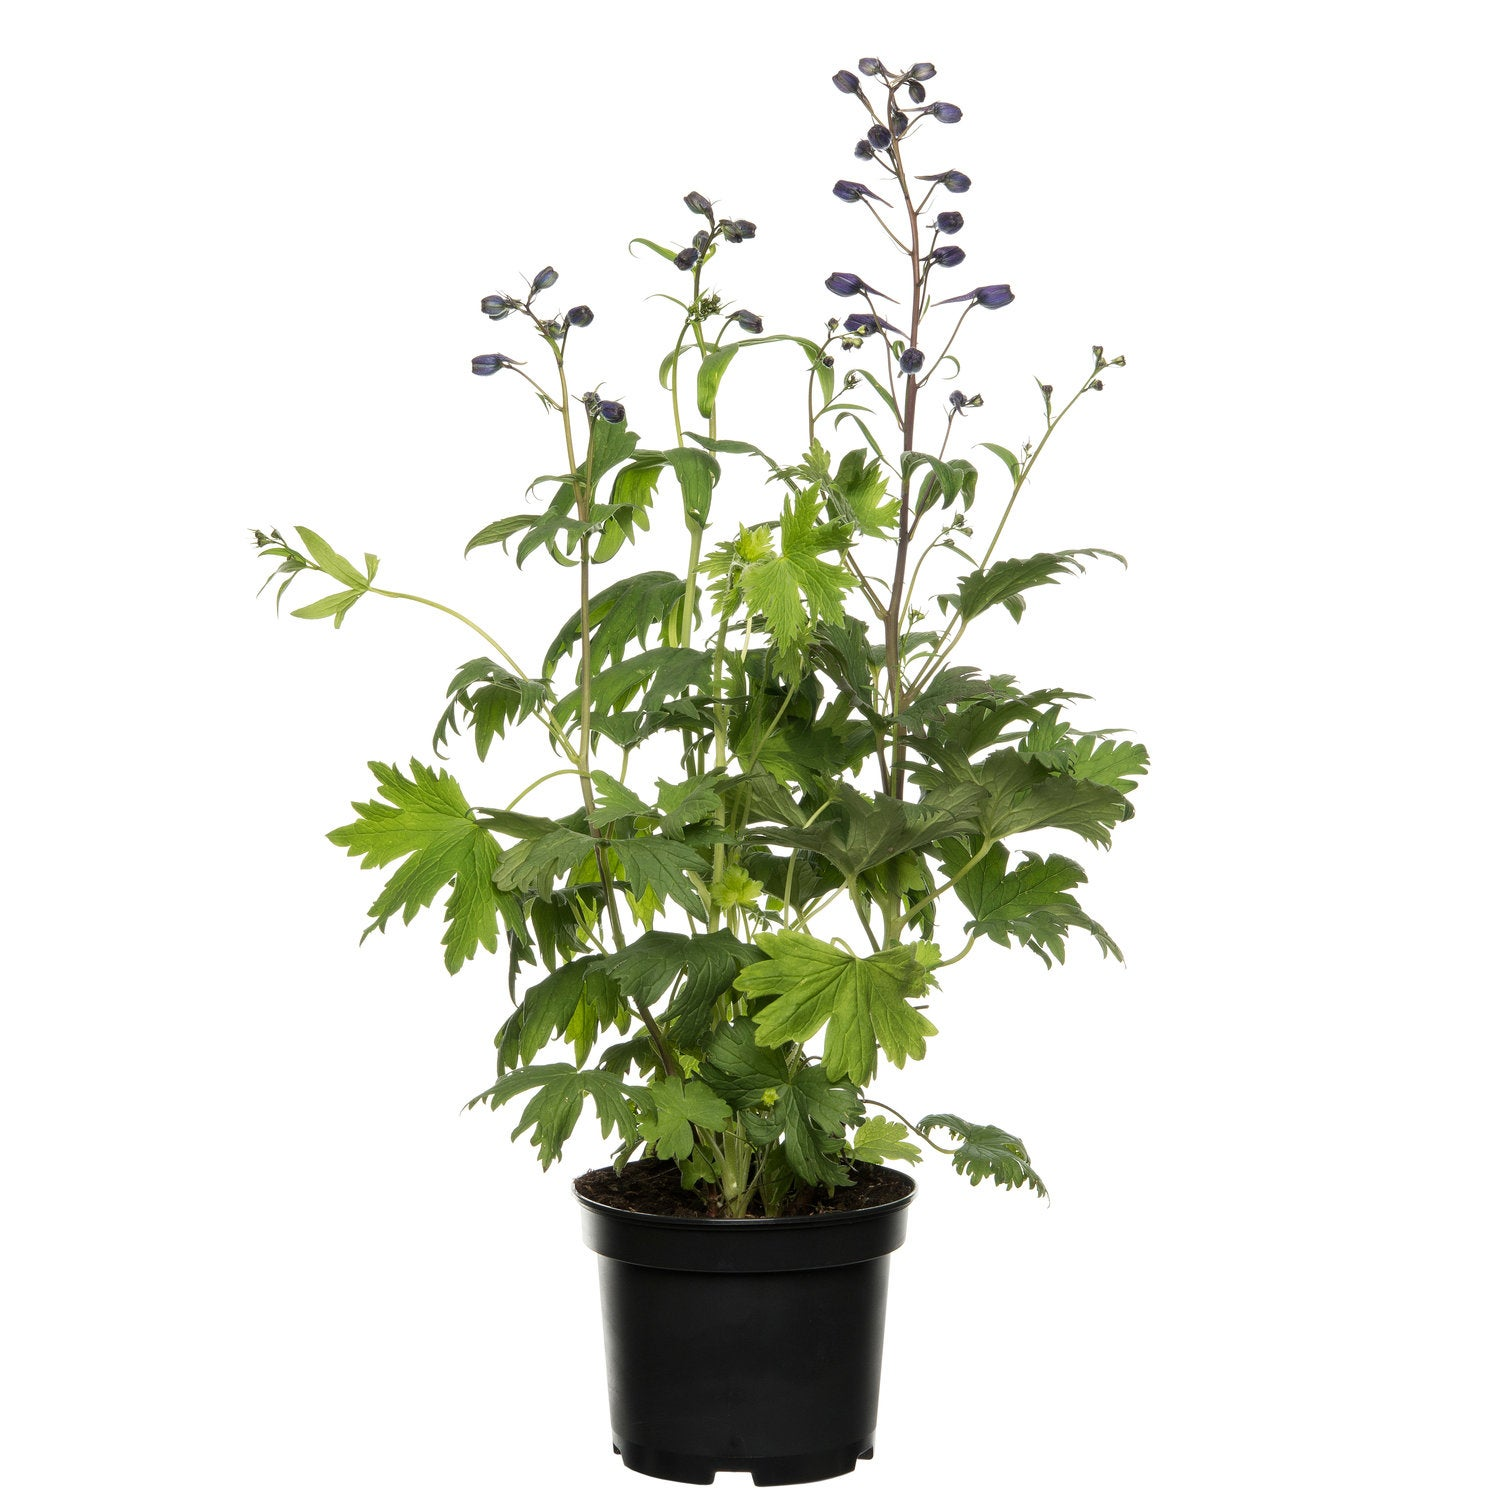 Ridderspoor (Delphinium (P) 'Magic Fountains') D 19 H 40 cm